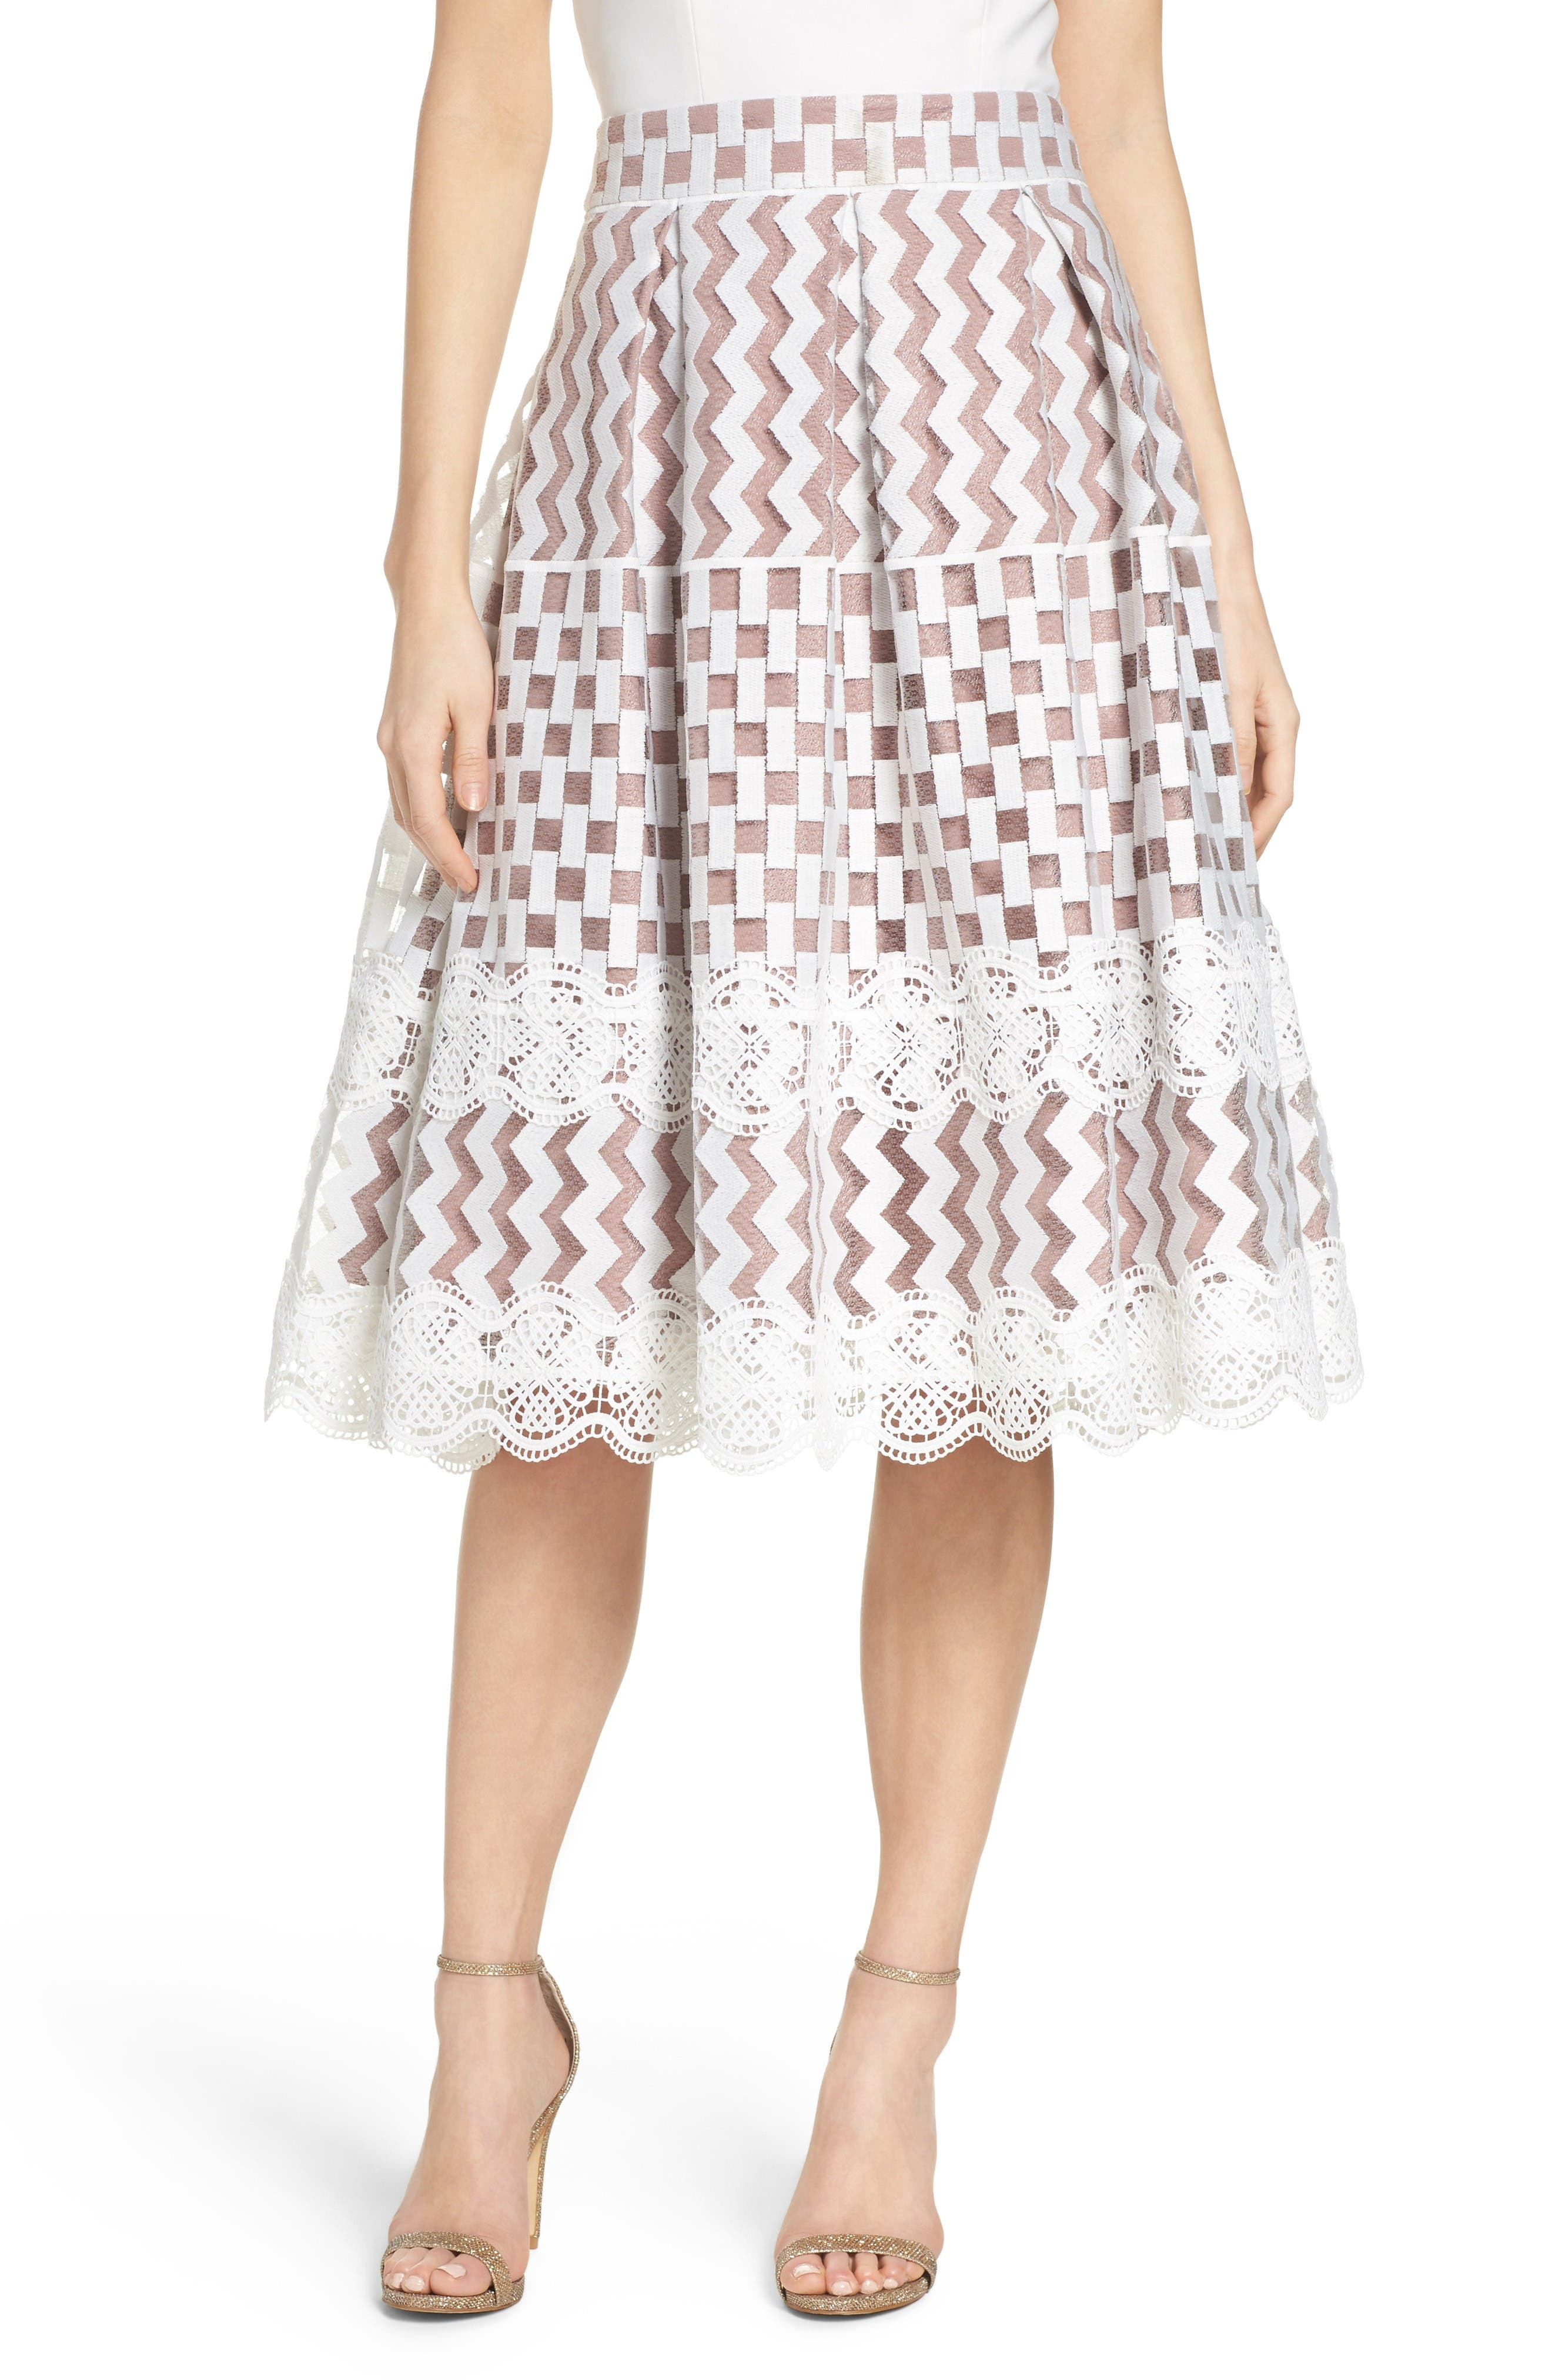 Midi Skirts: Lace, Print, Pencil, Tiered, Tube & More | Nordstrom ...